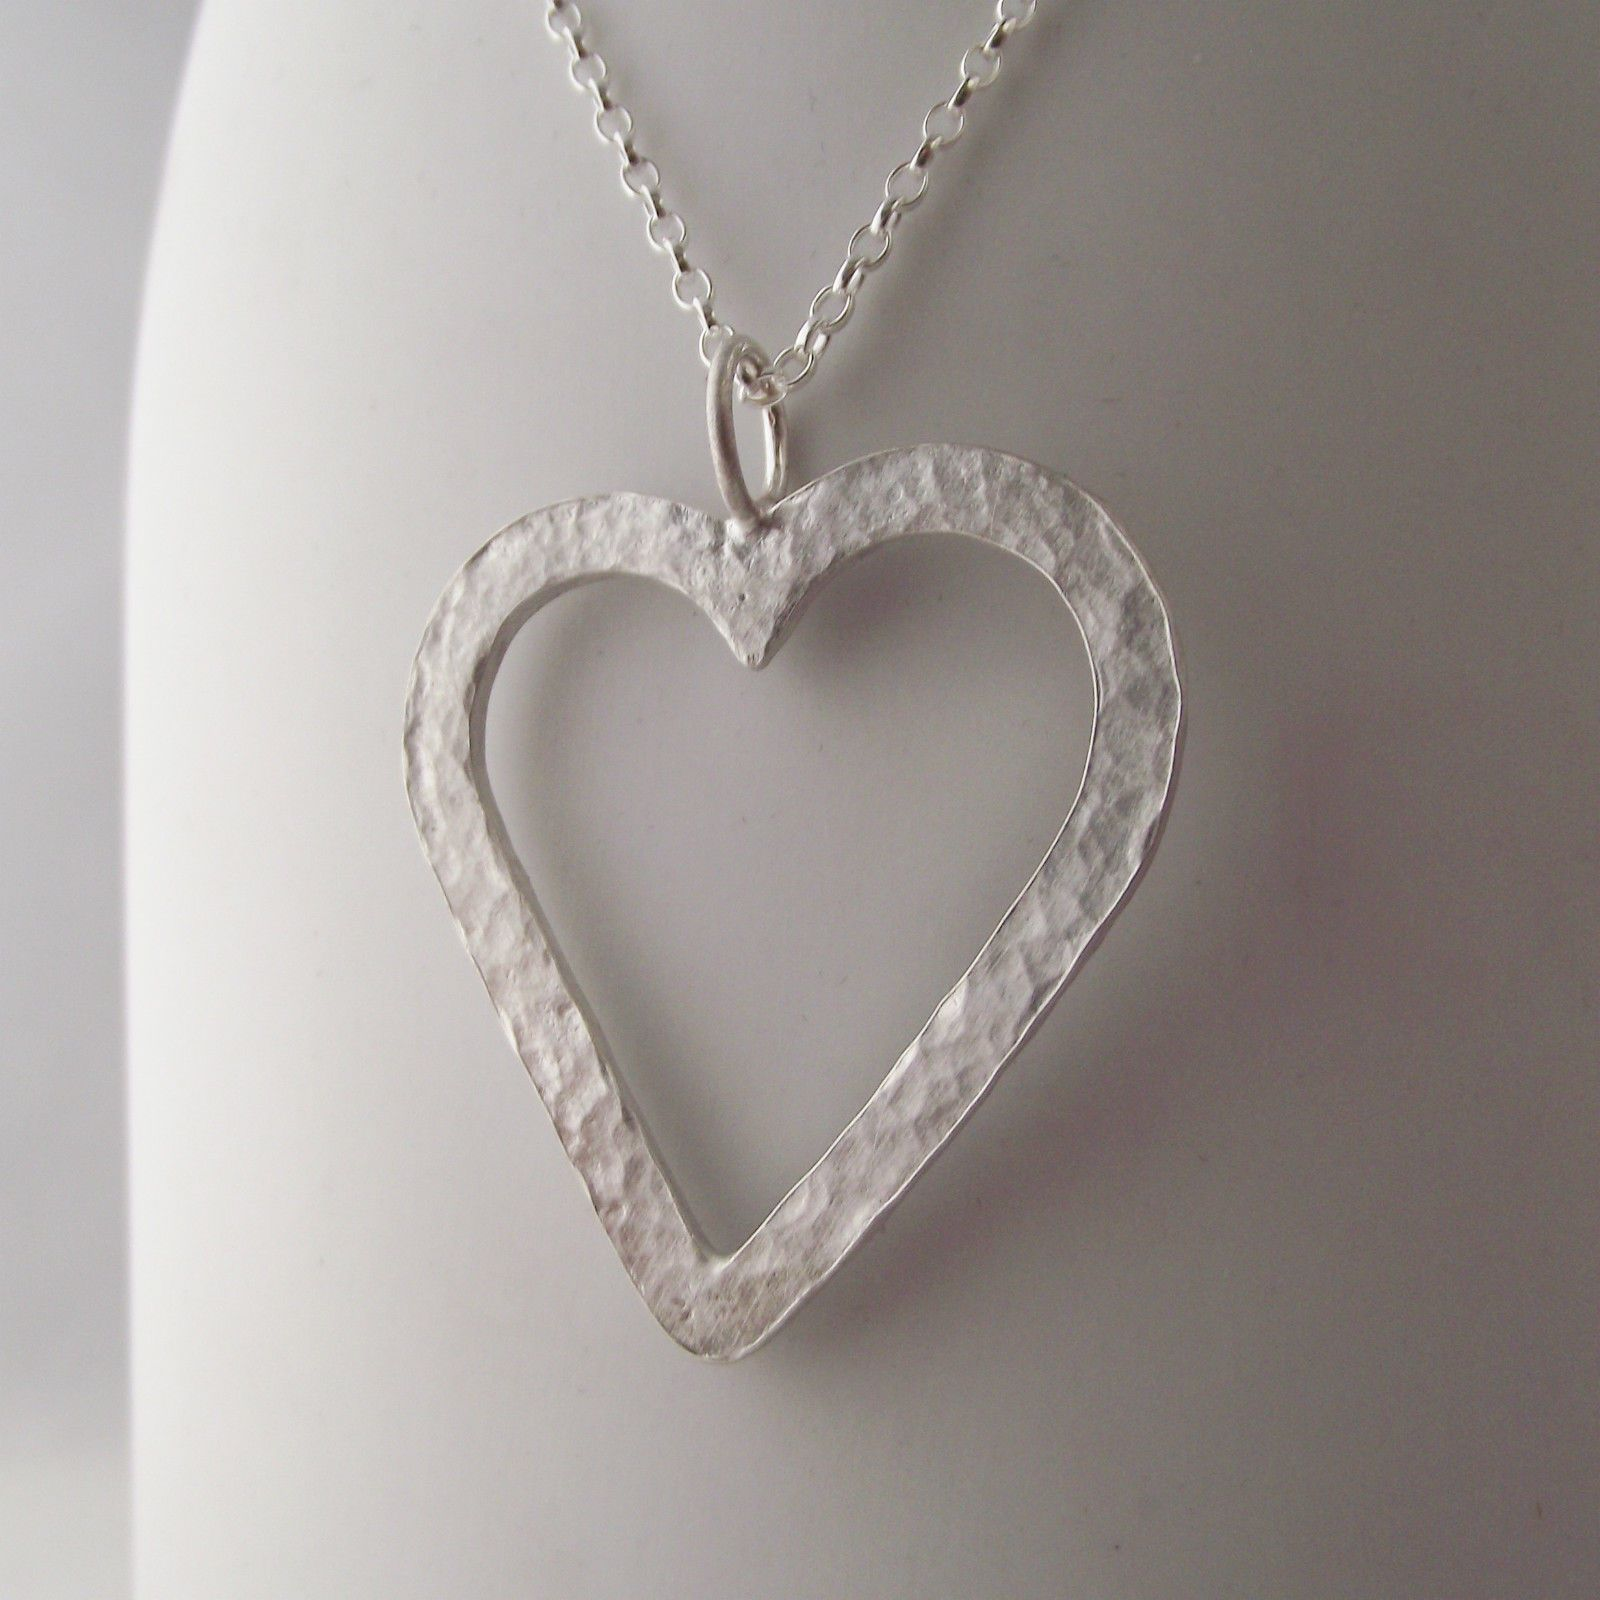 Stunning Necklace Handmade Sterling Silver Hammer Finish